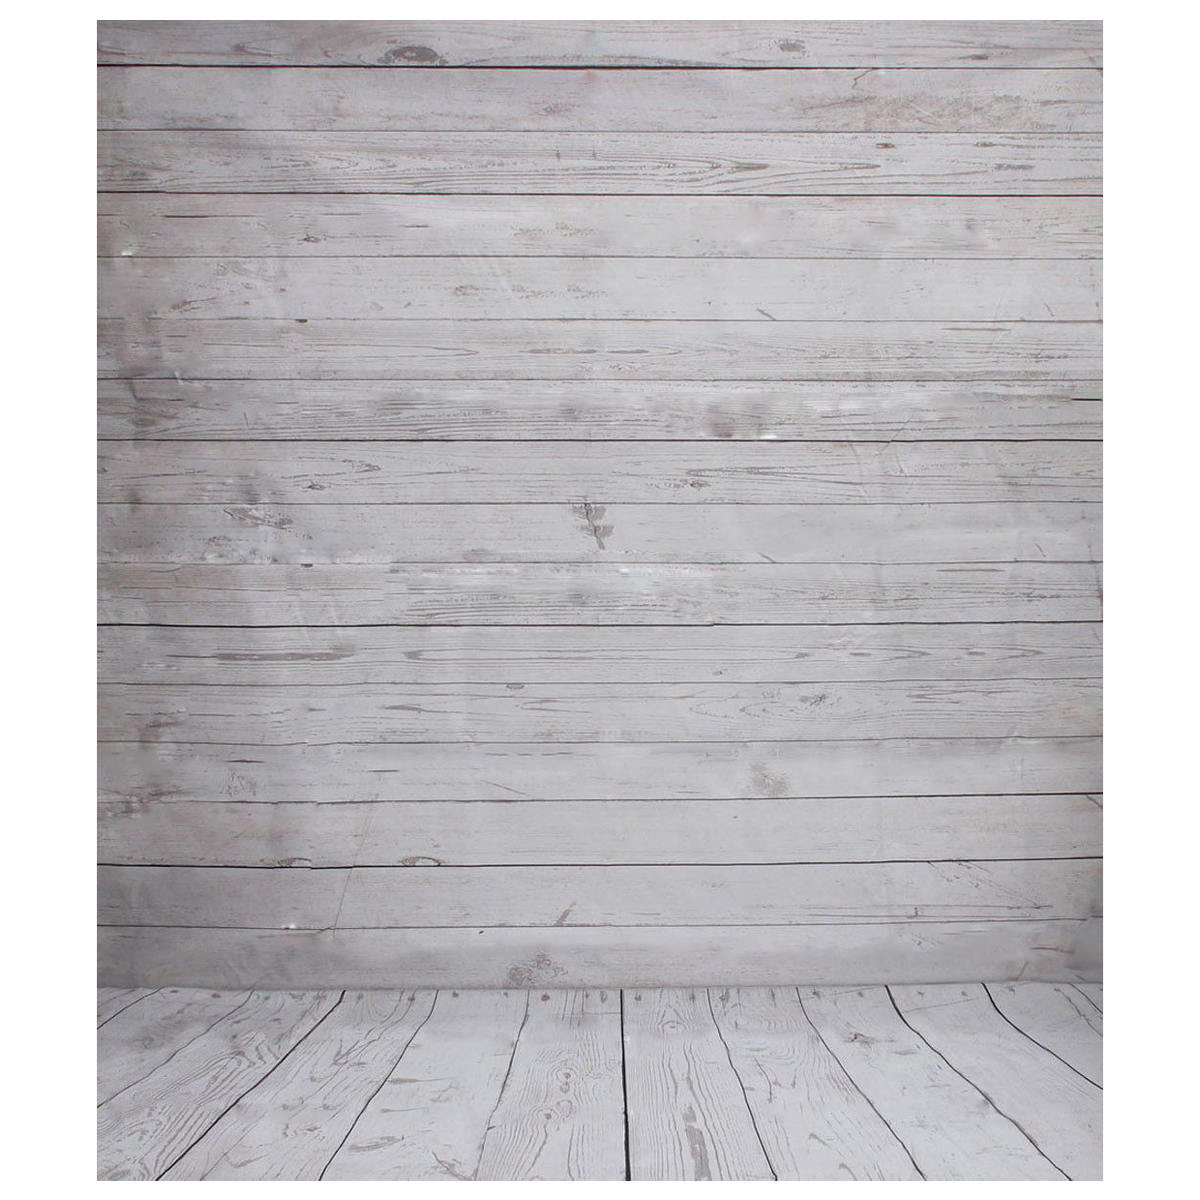 EDT-2*1.5m Vintage Grey Wooden Wall Floor Studio Props Photography Backdrops Background faconnable faconnable stripe m edt spr 30 мл